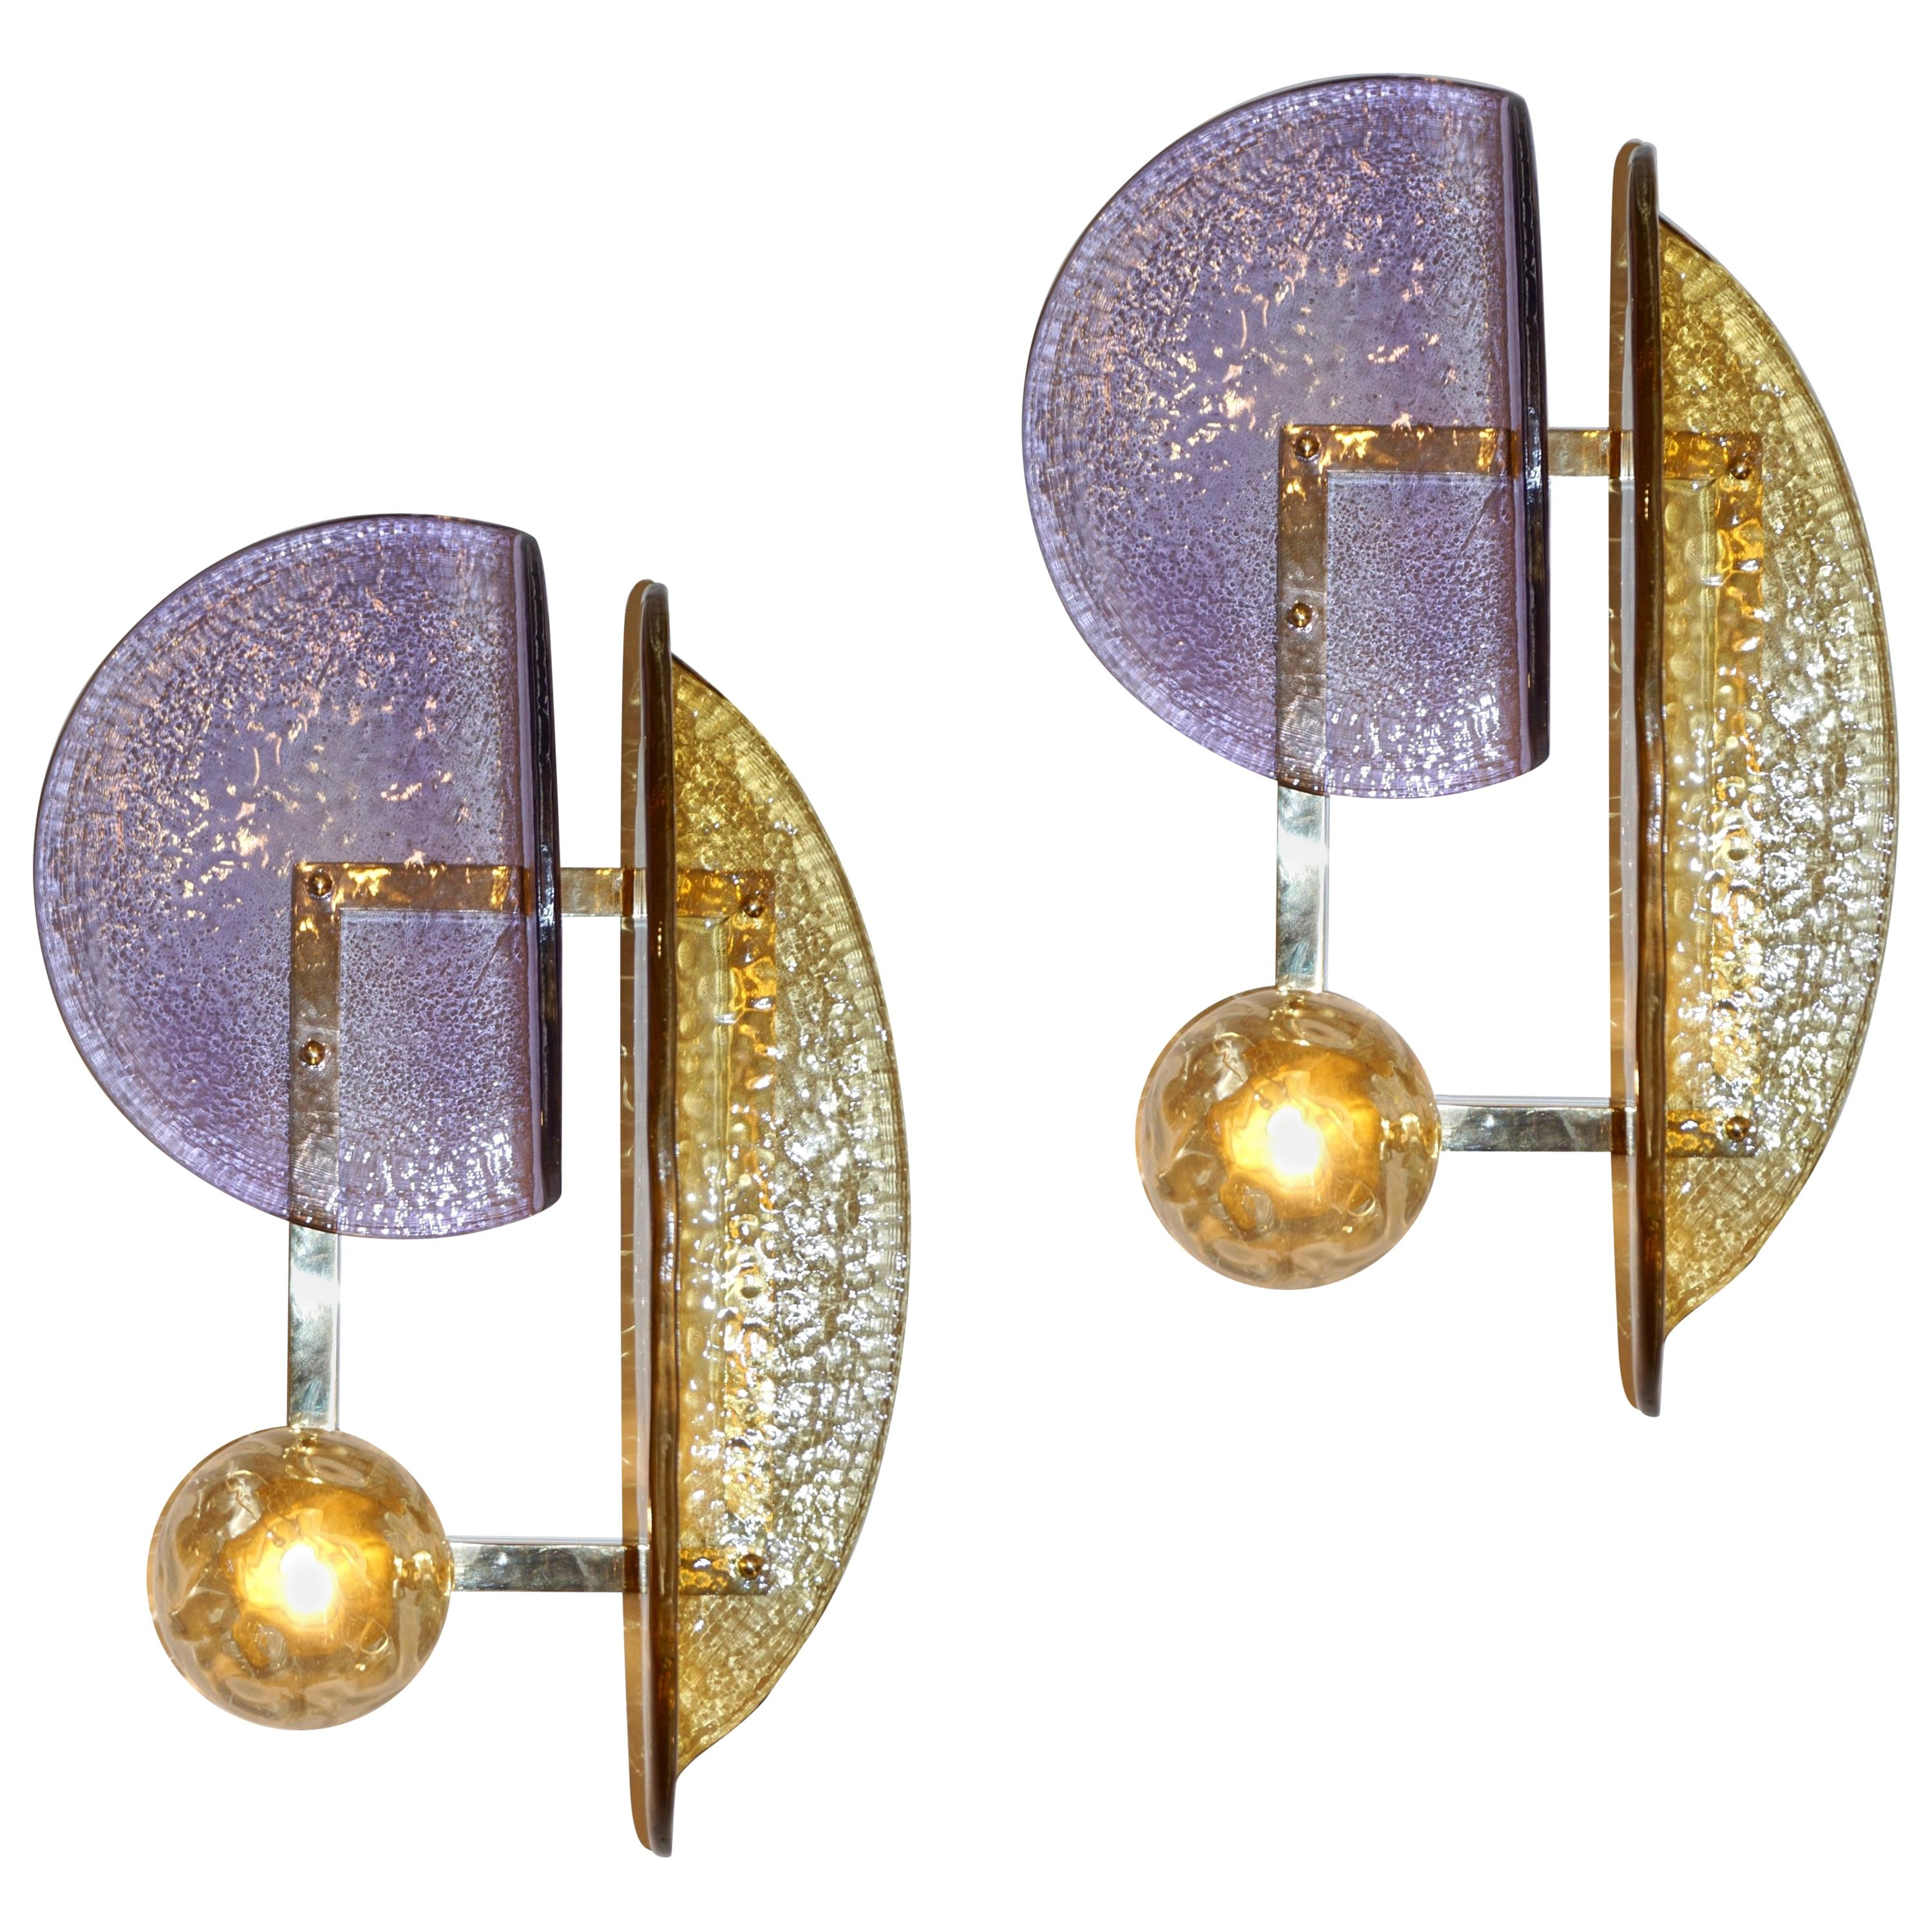 Contemporary Italian Pair of Amethyst and Amber Murano Glass Gold Brass Sconces